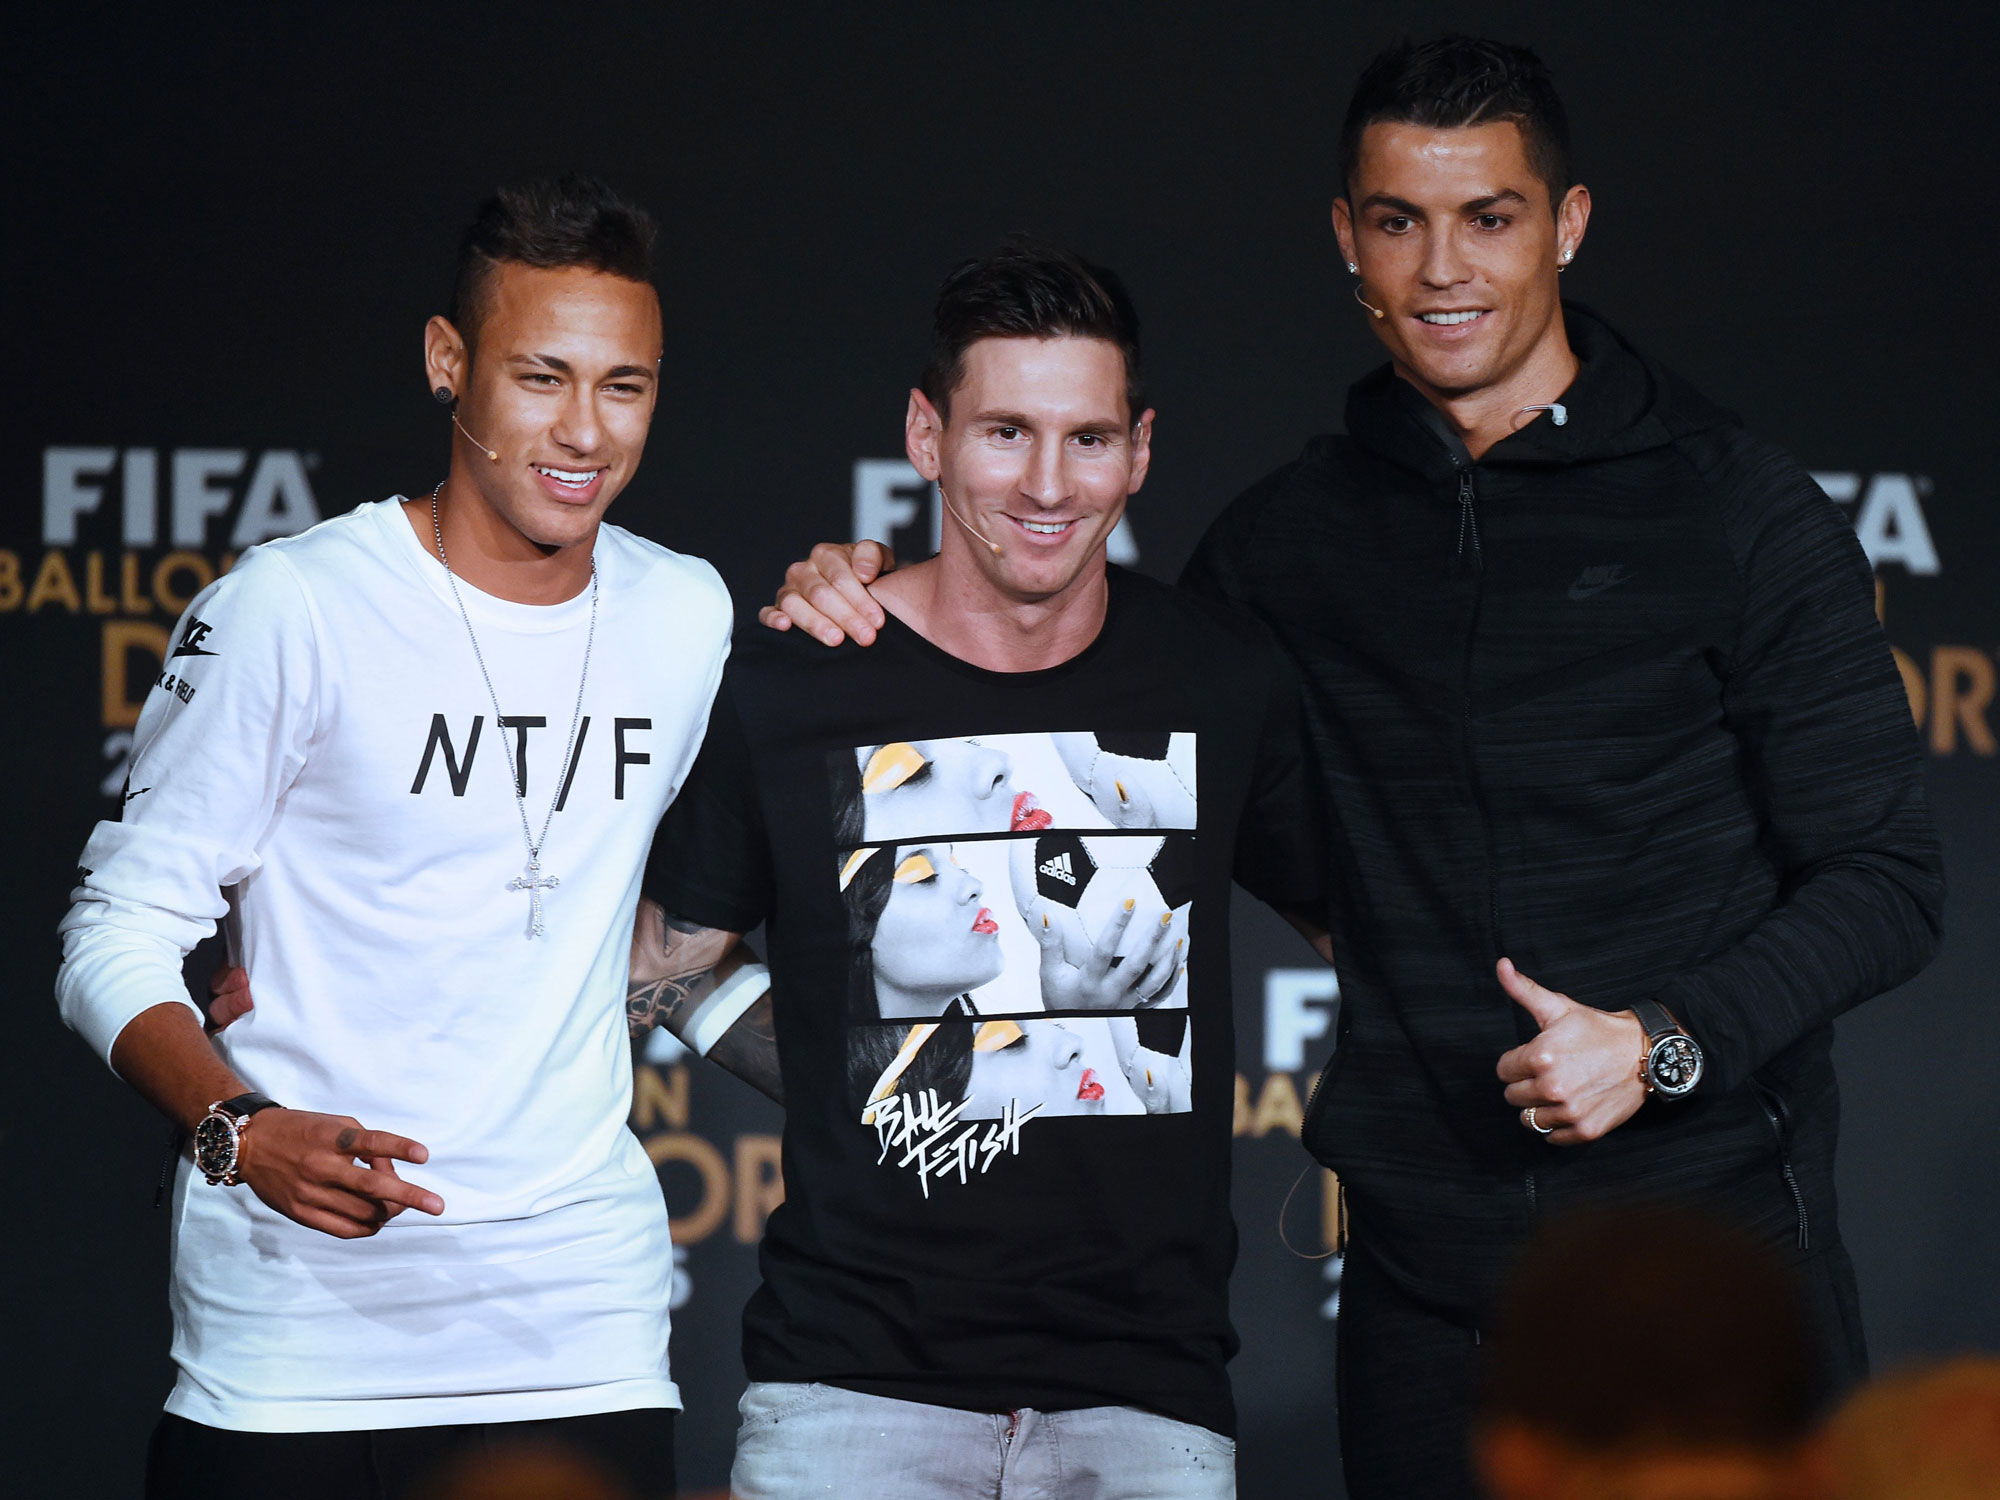 Neymar, Lionel Messi and Cristiano Ronaldo are all involved in fraud cases